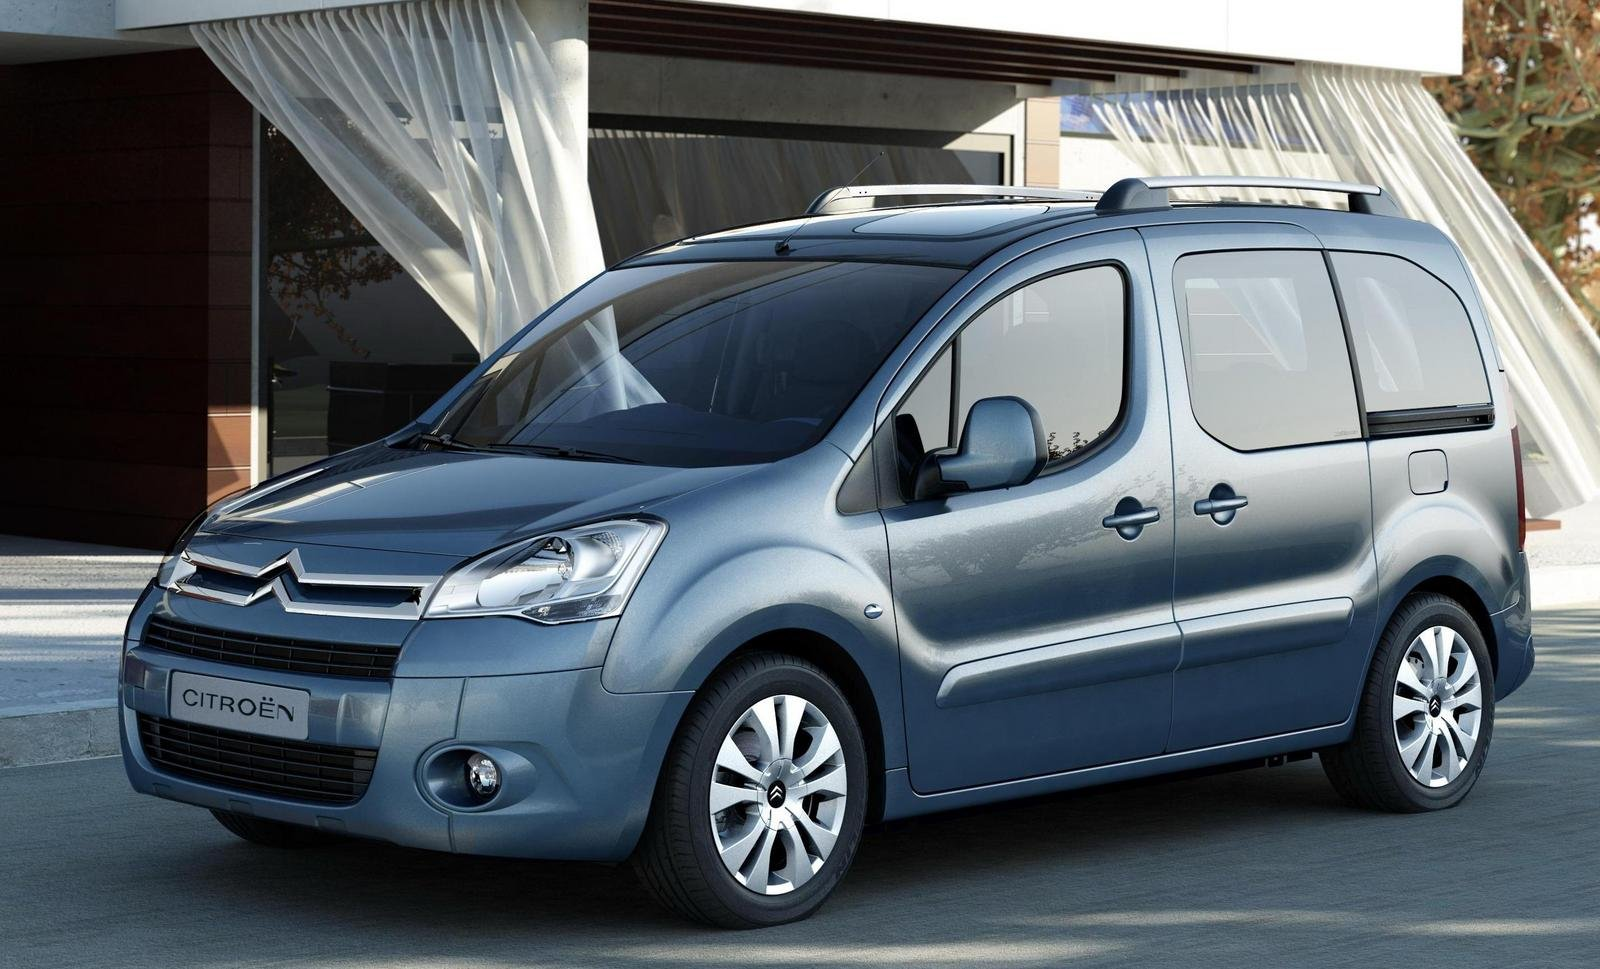 2008 citroen berlingo picture 222505 car review top speed. Black Bedroom Furniture Sets. Home Design Ideas